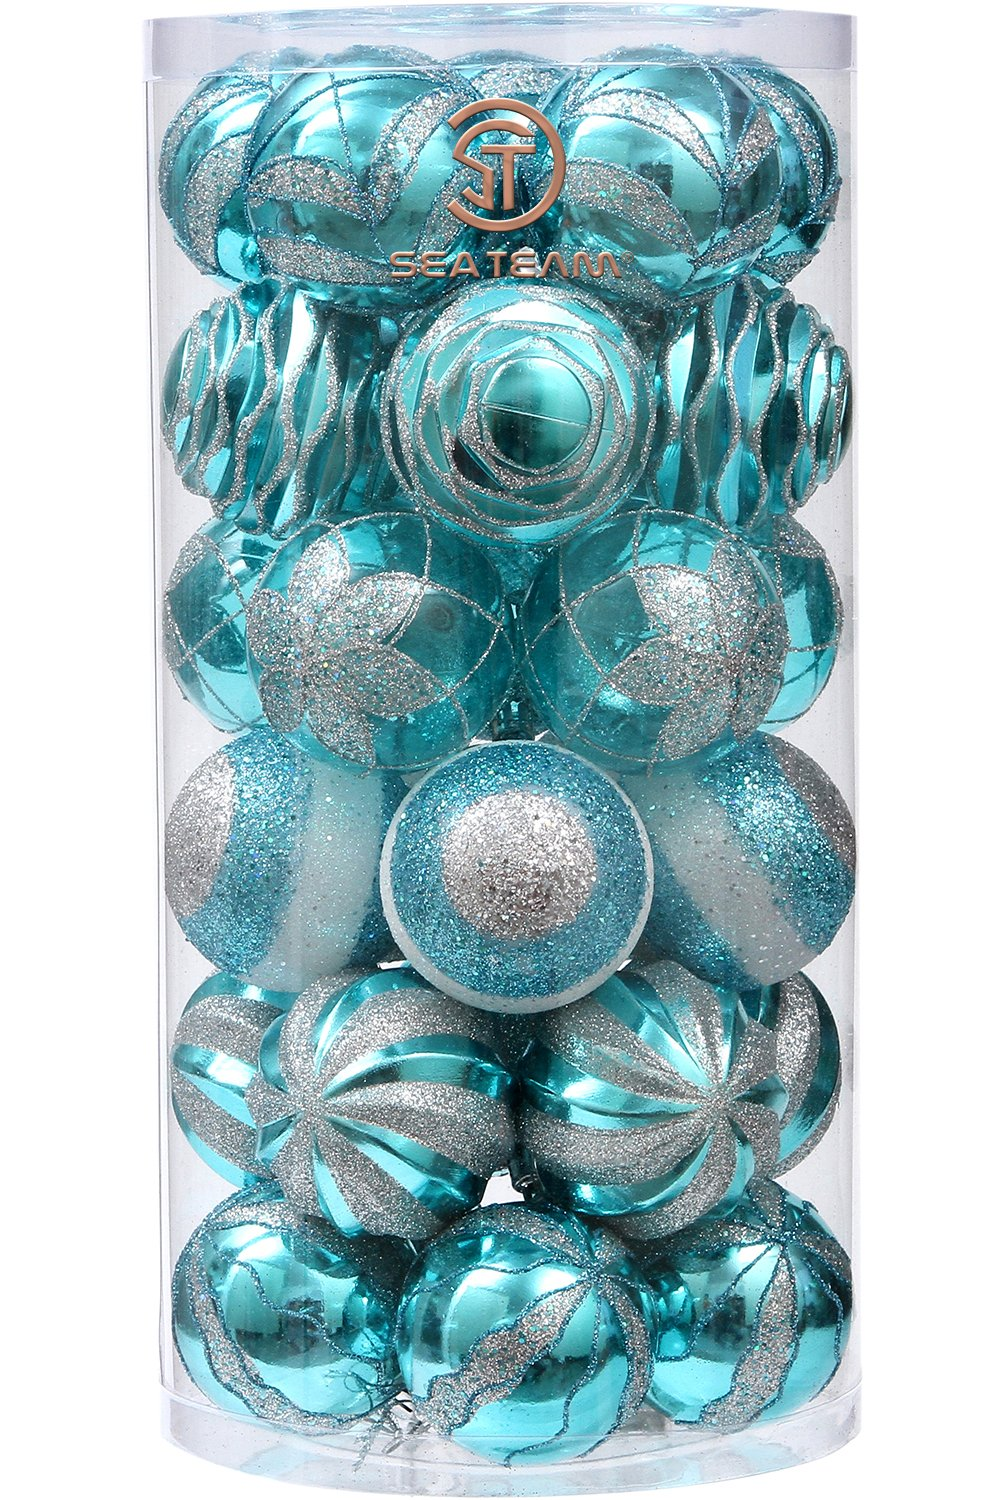 Sea Team 70mm/2.76 Decorative Shatterproof Painting & Glitering Designs Christmas Ball Ornaments Set, 30-Pack, Copper